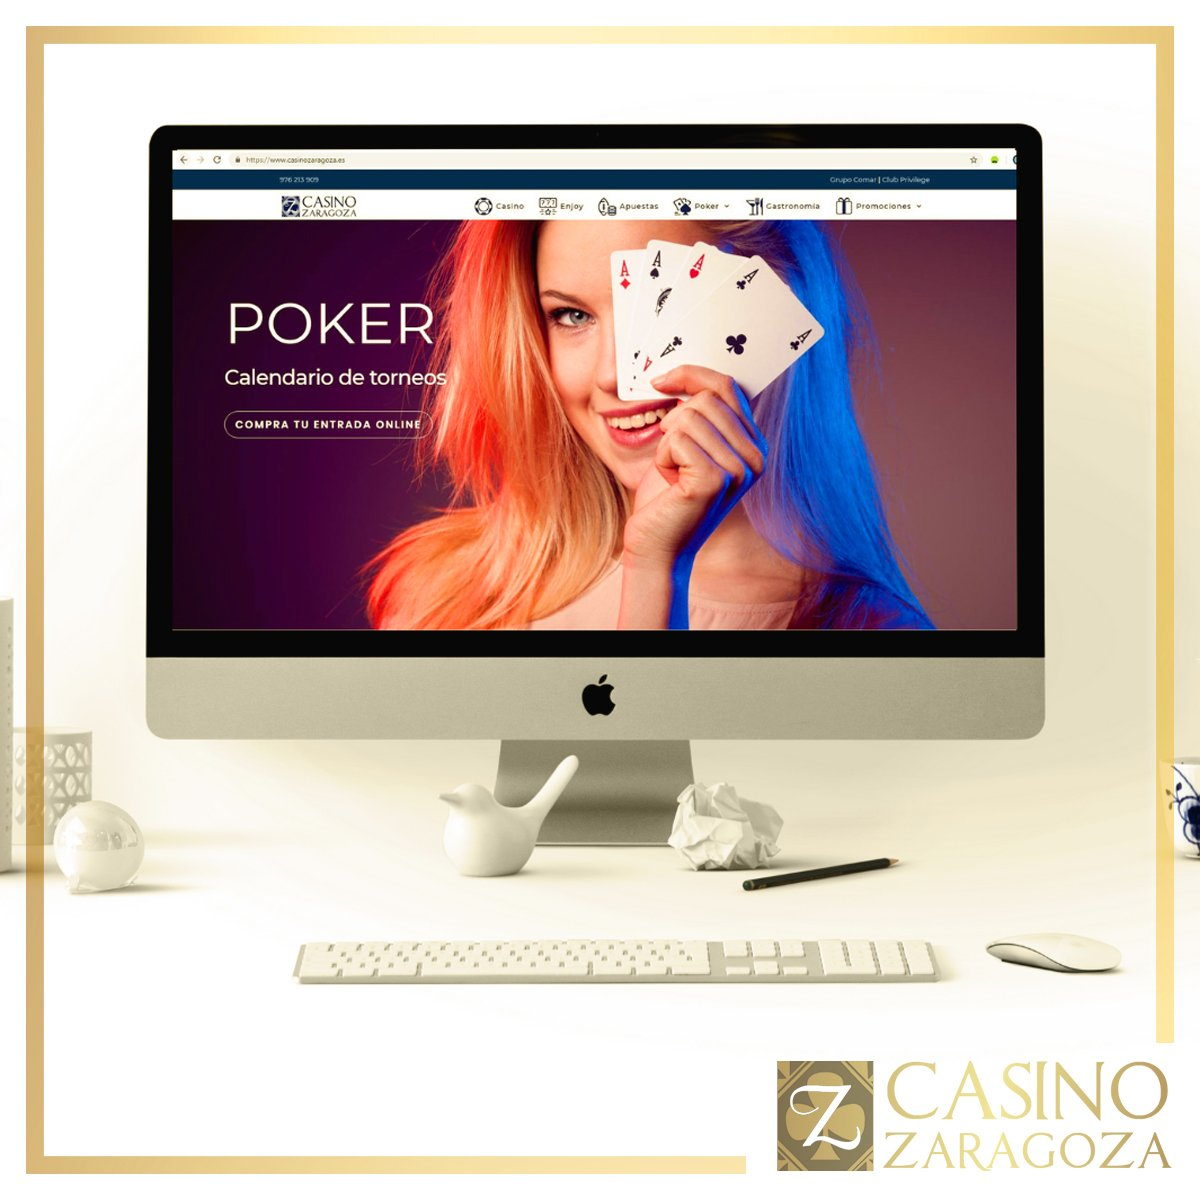 CasinoZaragoza photo